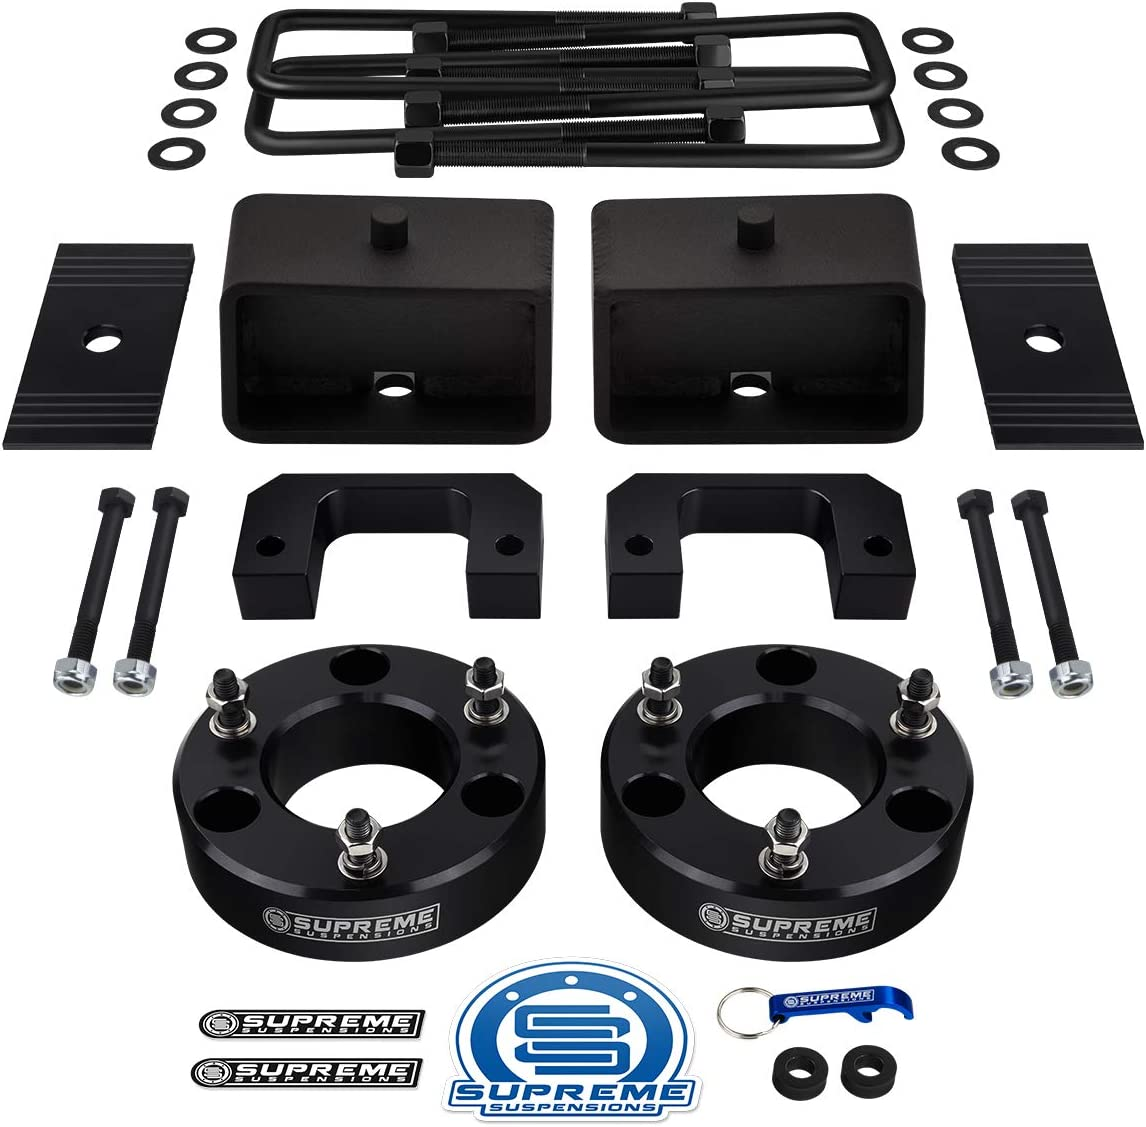 Supreme Suspensions free gift shipping - Full Lift Silverad 2007-2020 Chevy for Kit